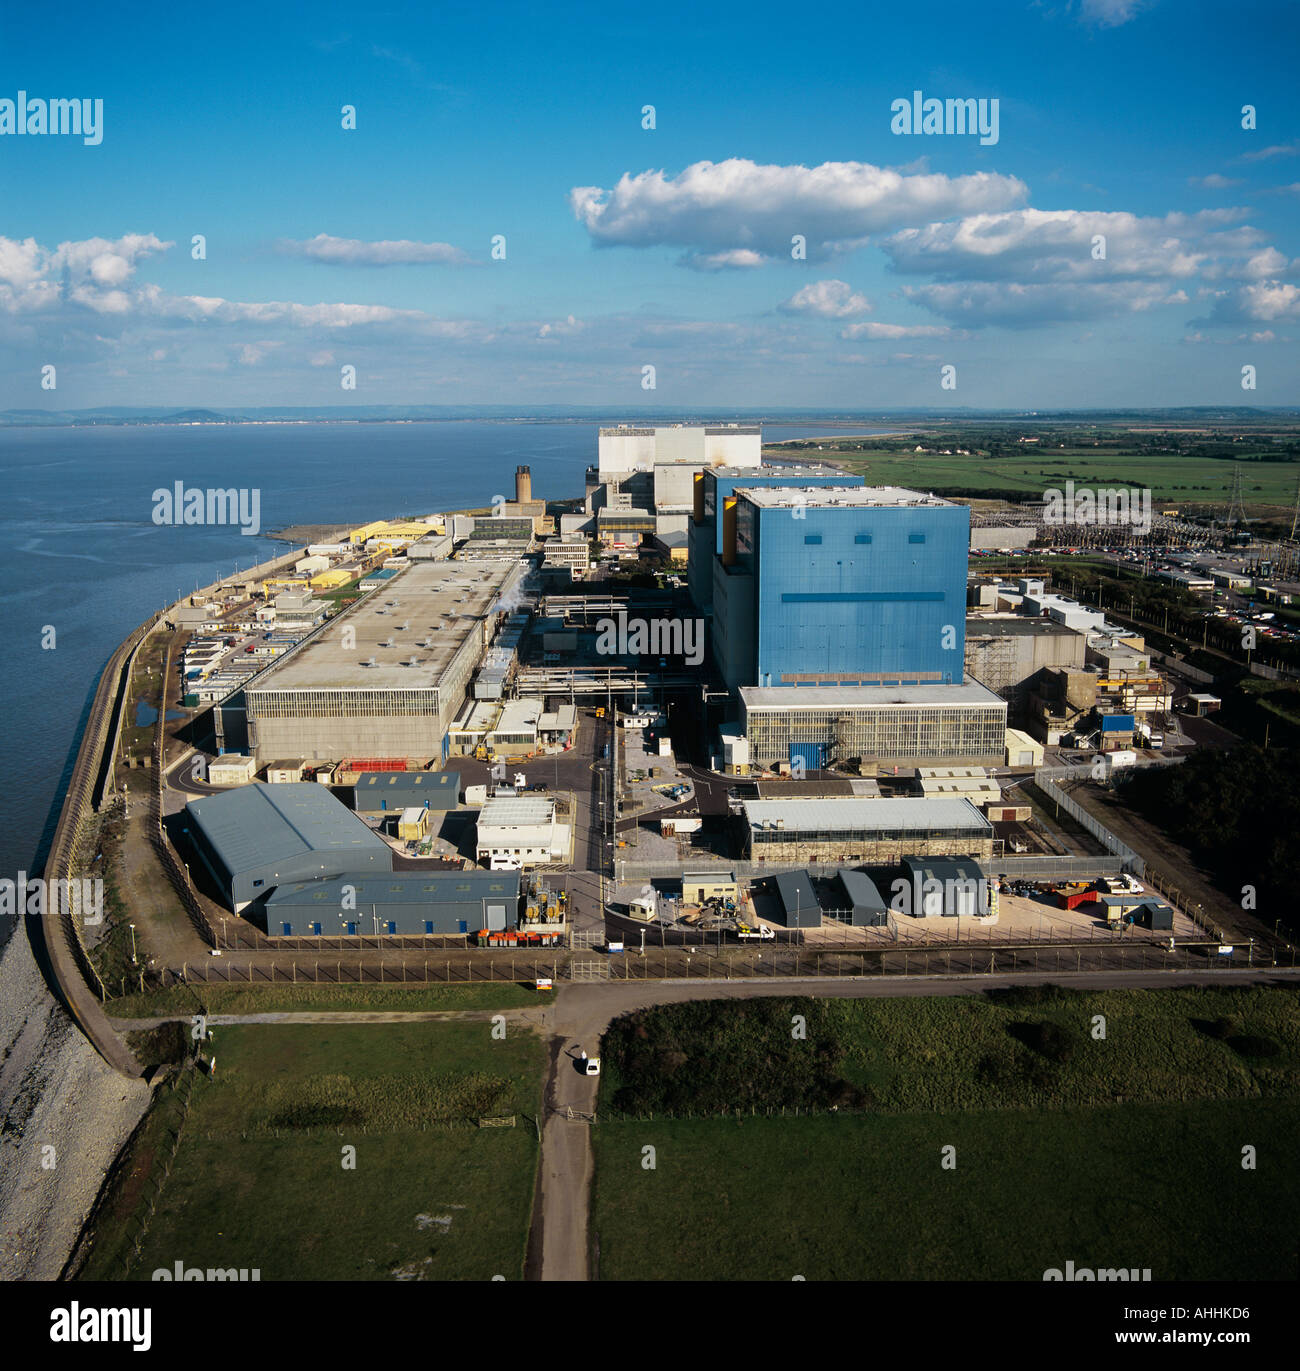 Hinckley Point Nuclear Power Station Severn Estuary UK aerial view - Stock Image